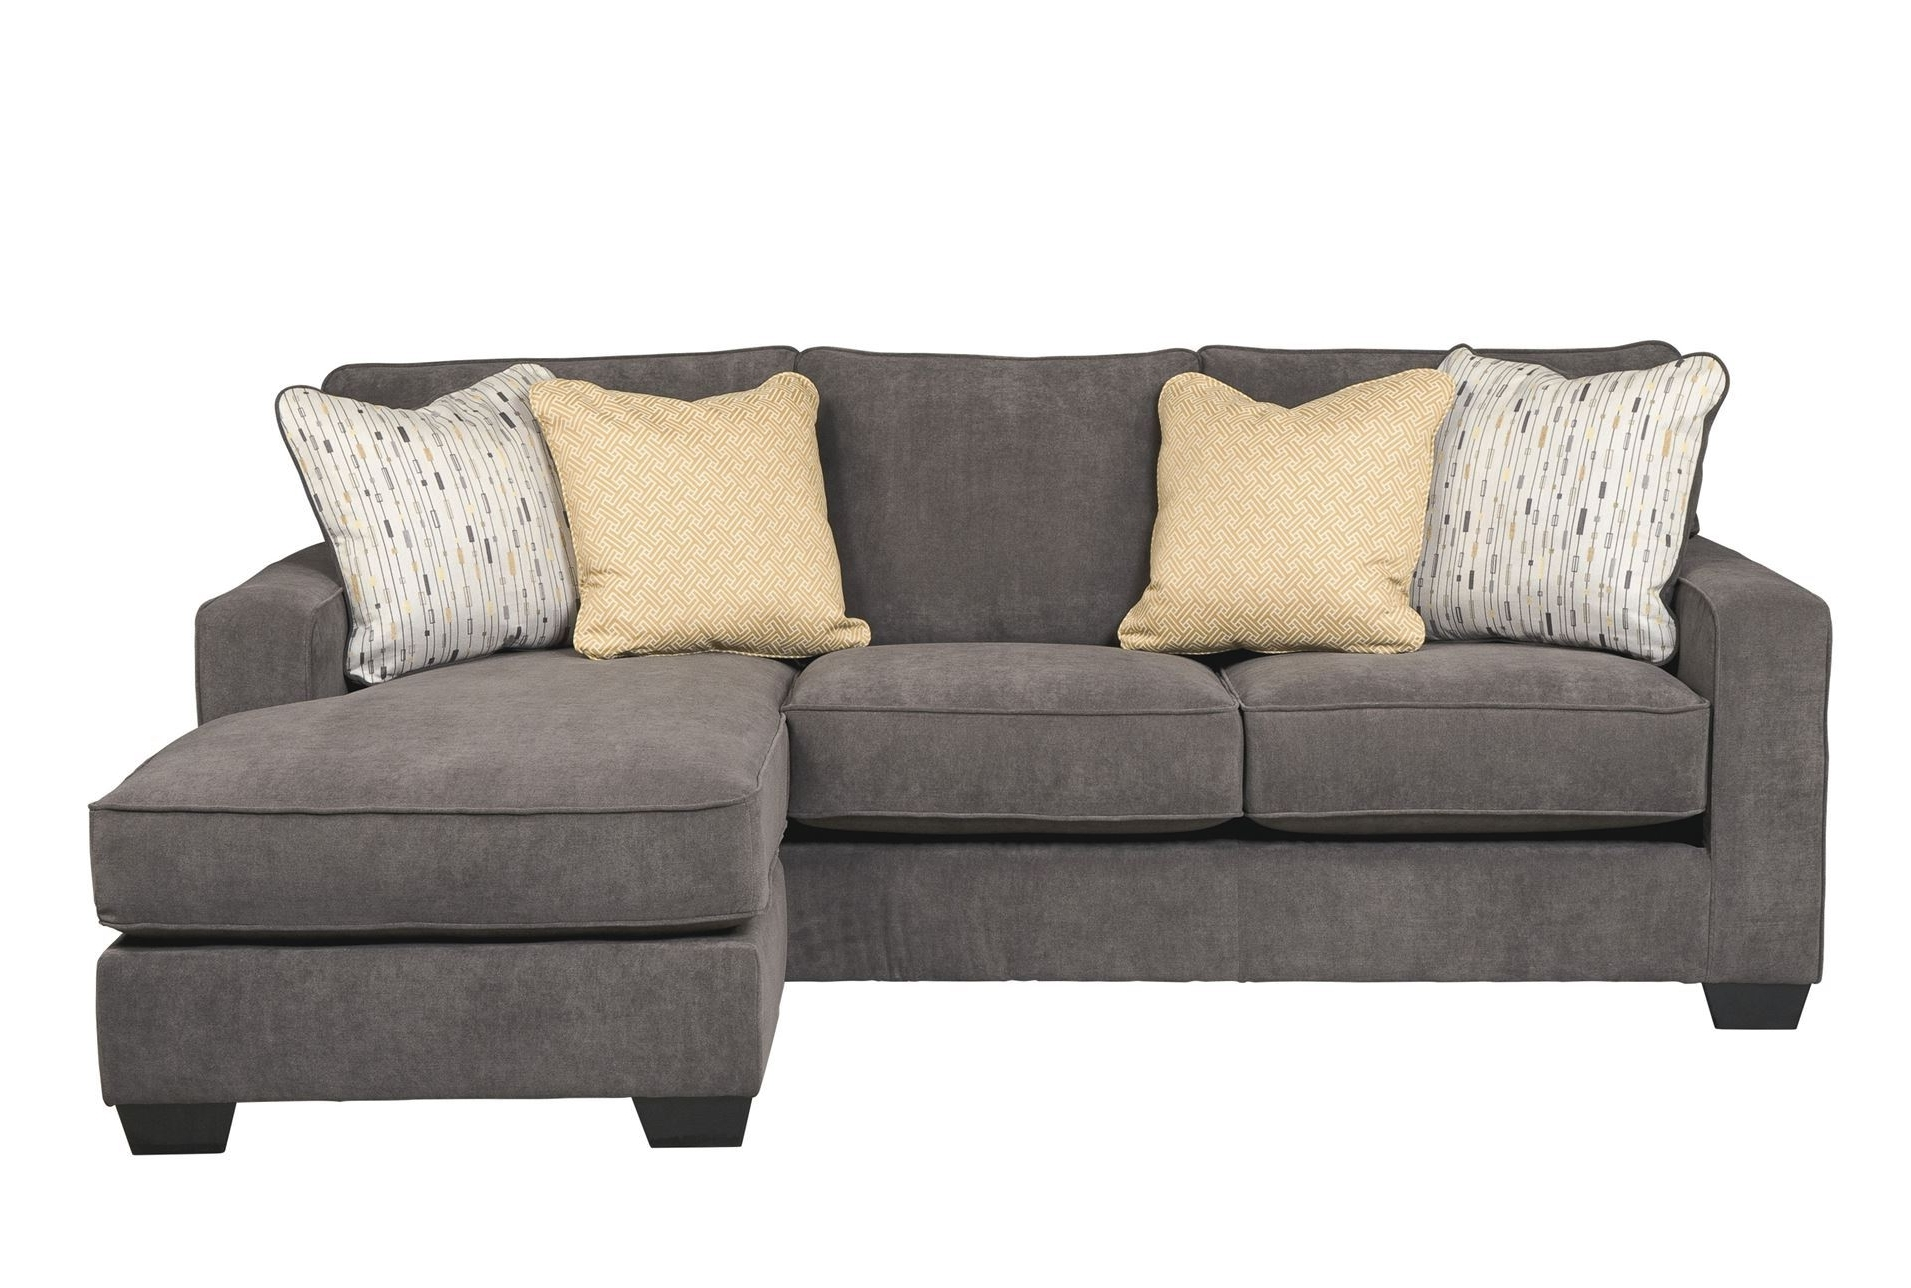 Living Spaces, Living Rooms And Apartments With Regard To Gray Sectionals With Chaise (View 3 of 15)